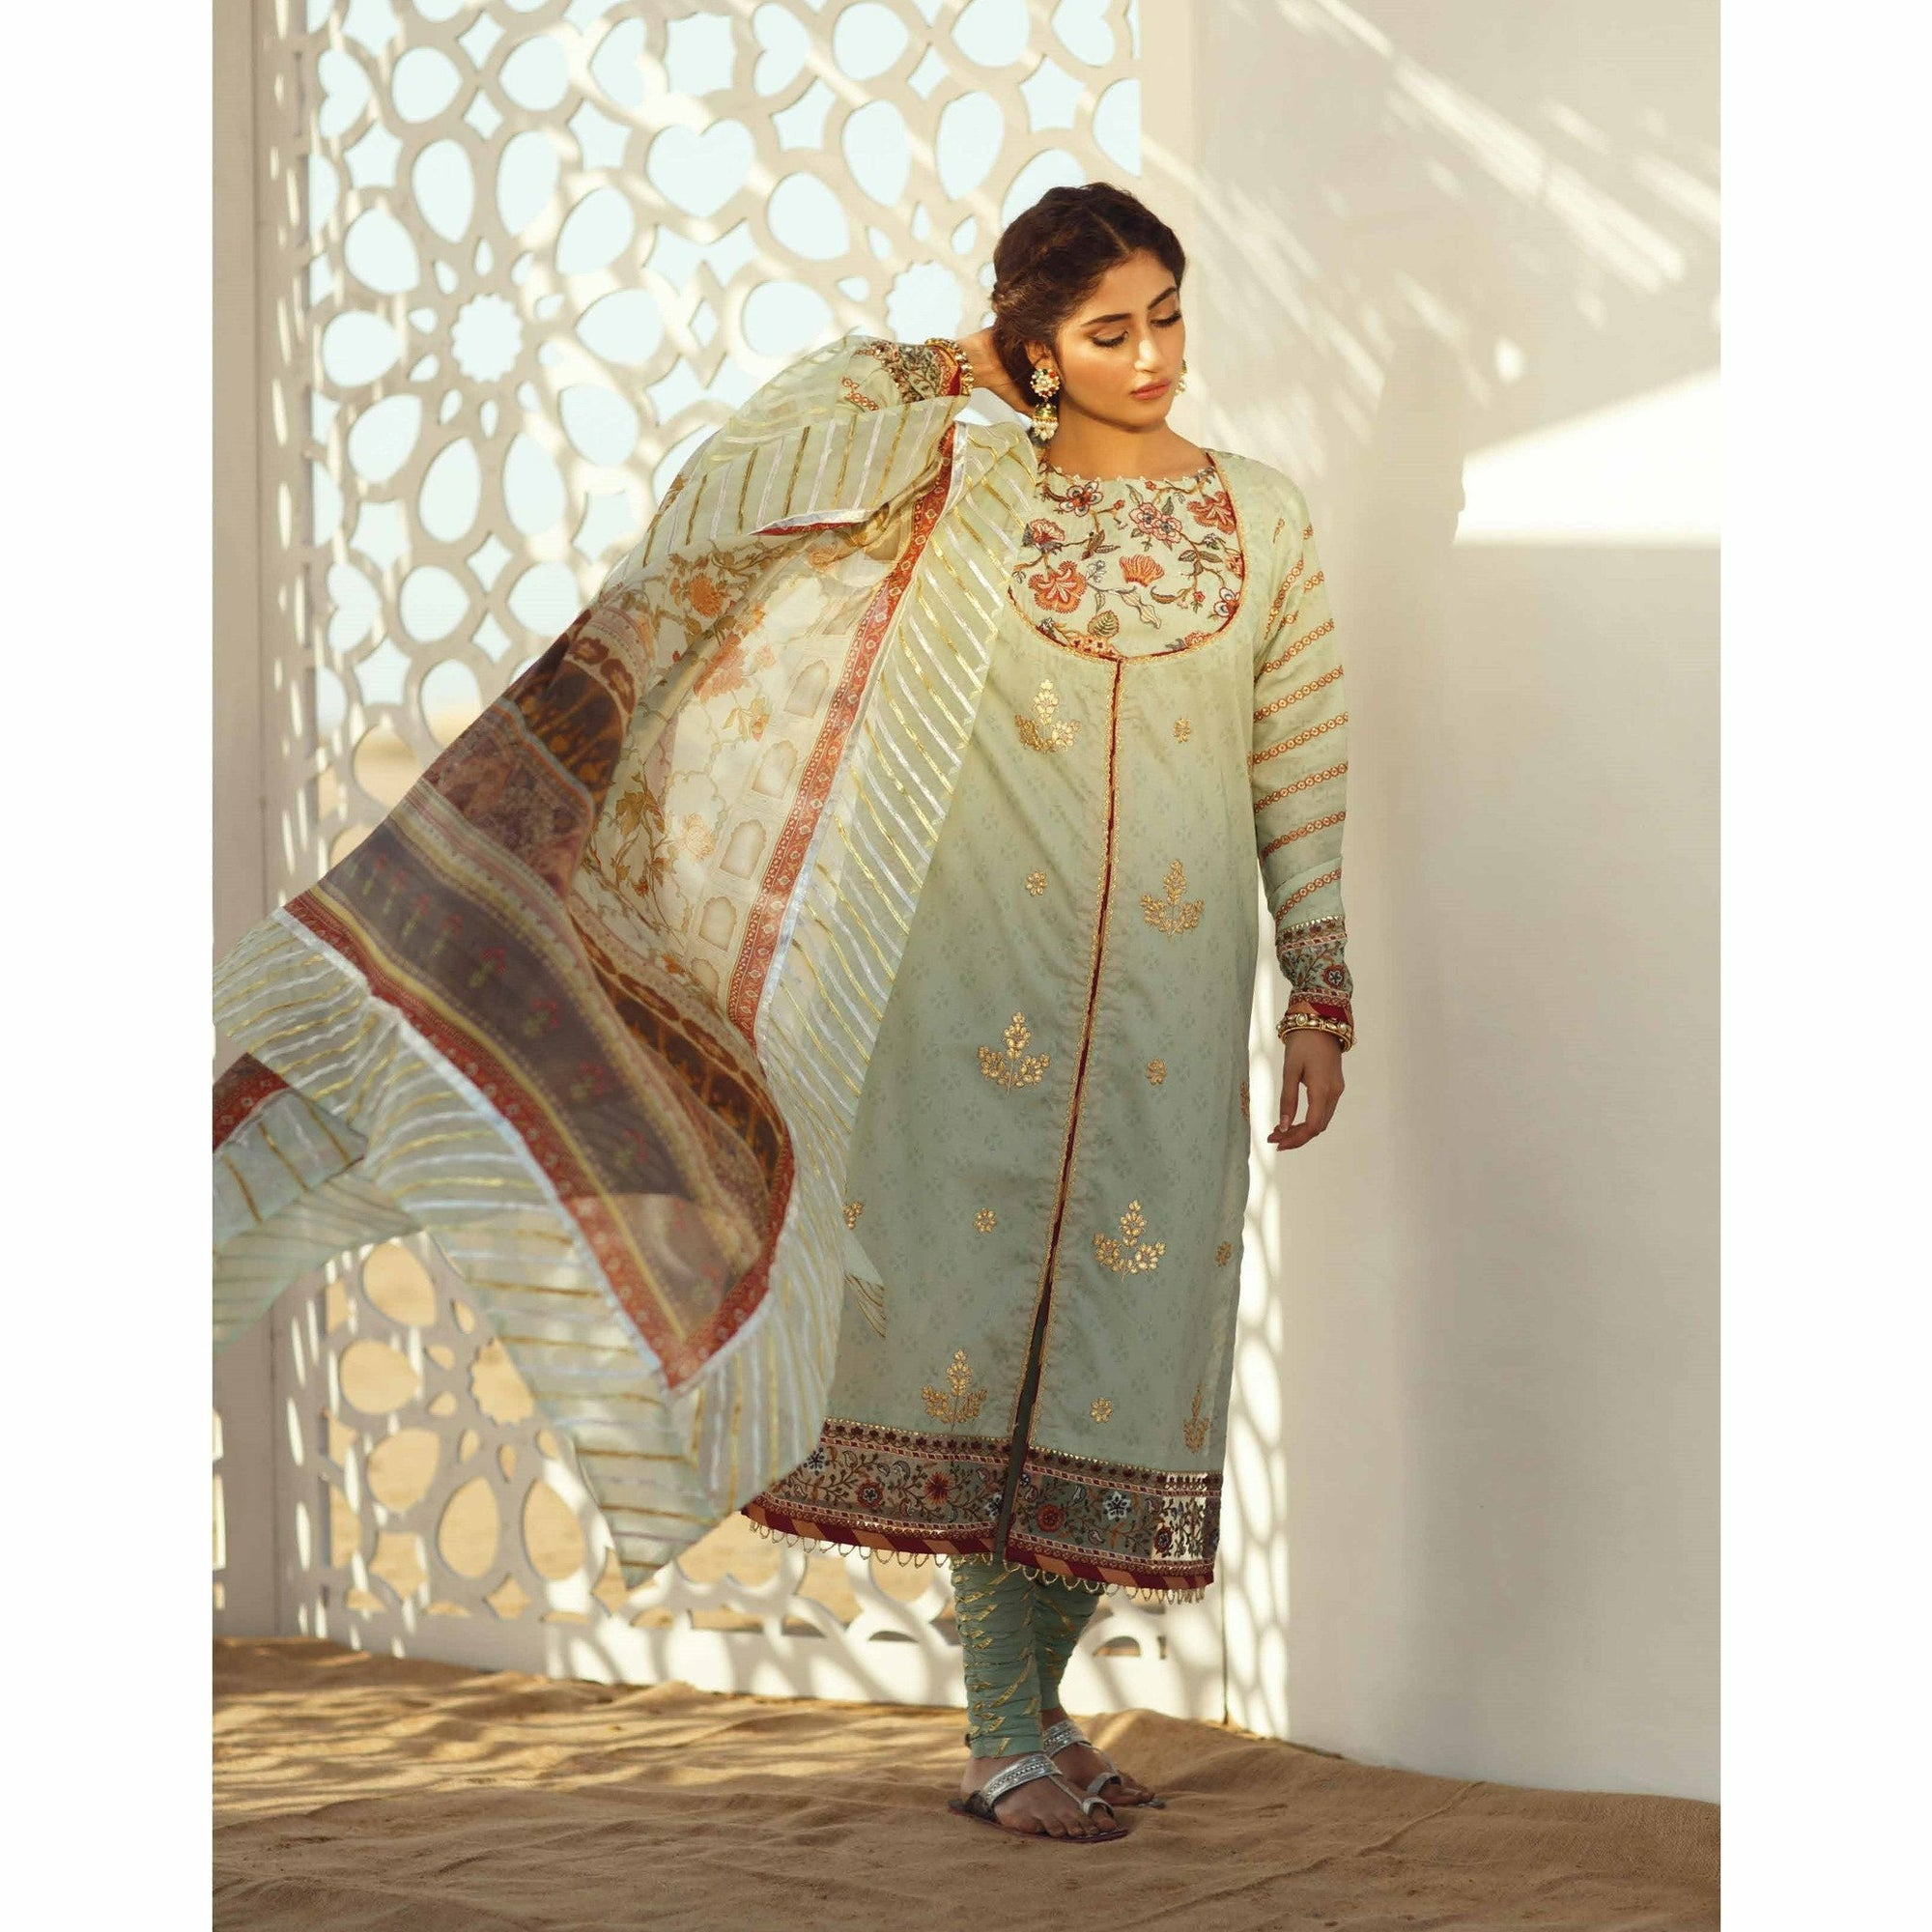 Qalamkar | Luxury Festive 20 | EC-03 - House of Faiza